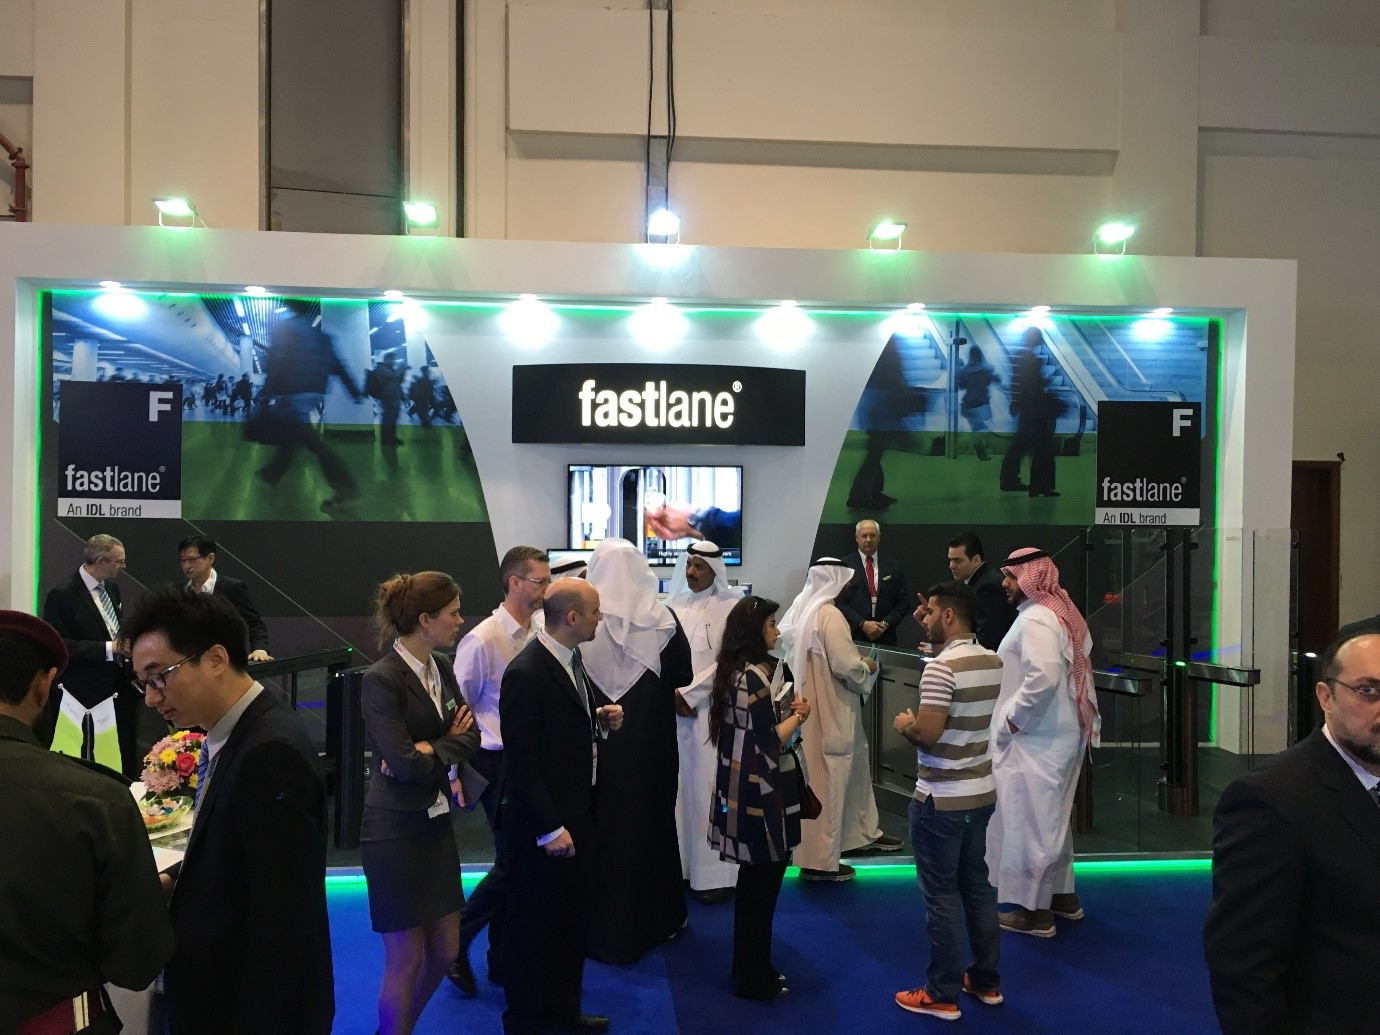 Fastlane Turnstiles stand at Intersec 2017 with personnel and clients mingling infront